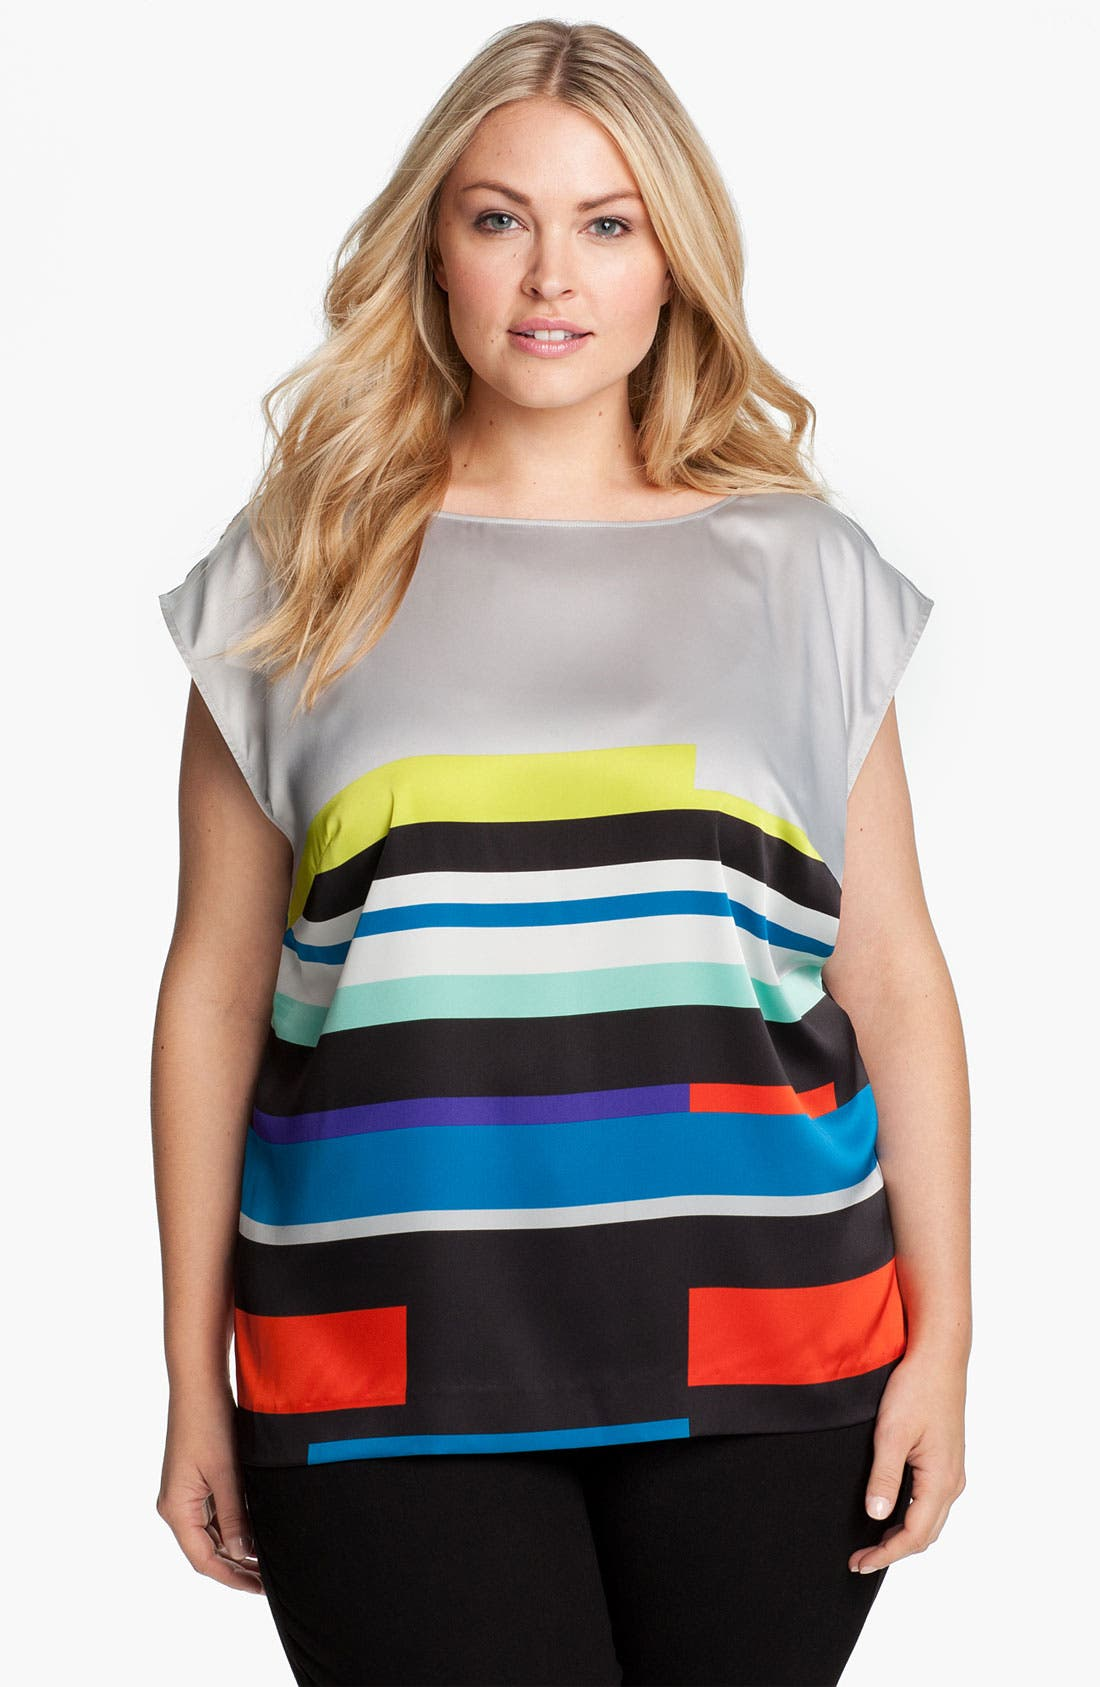 Alternate Image 1 Selected - Vince Camuto 'Graphic Lines' Blouse (Plus)